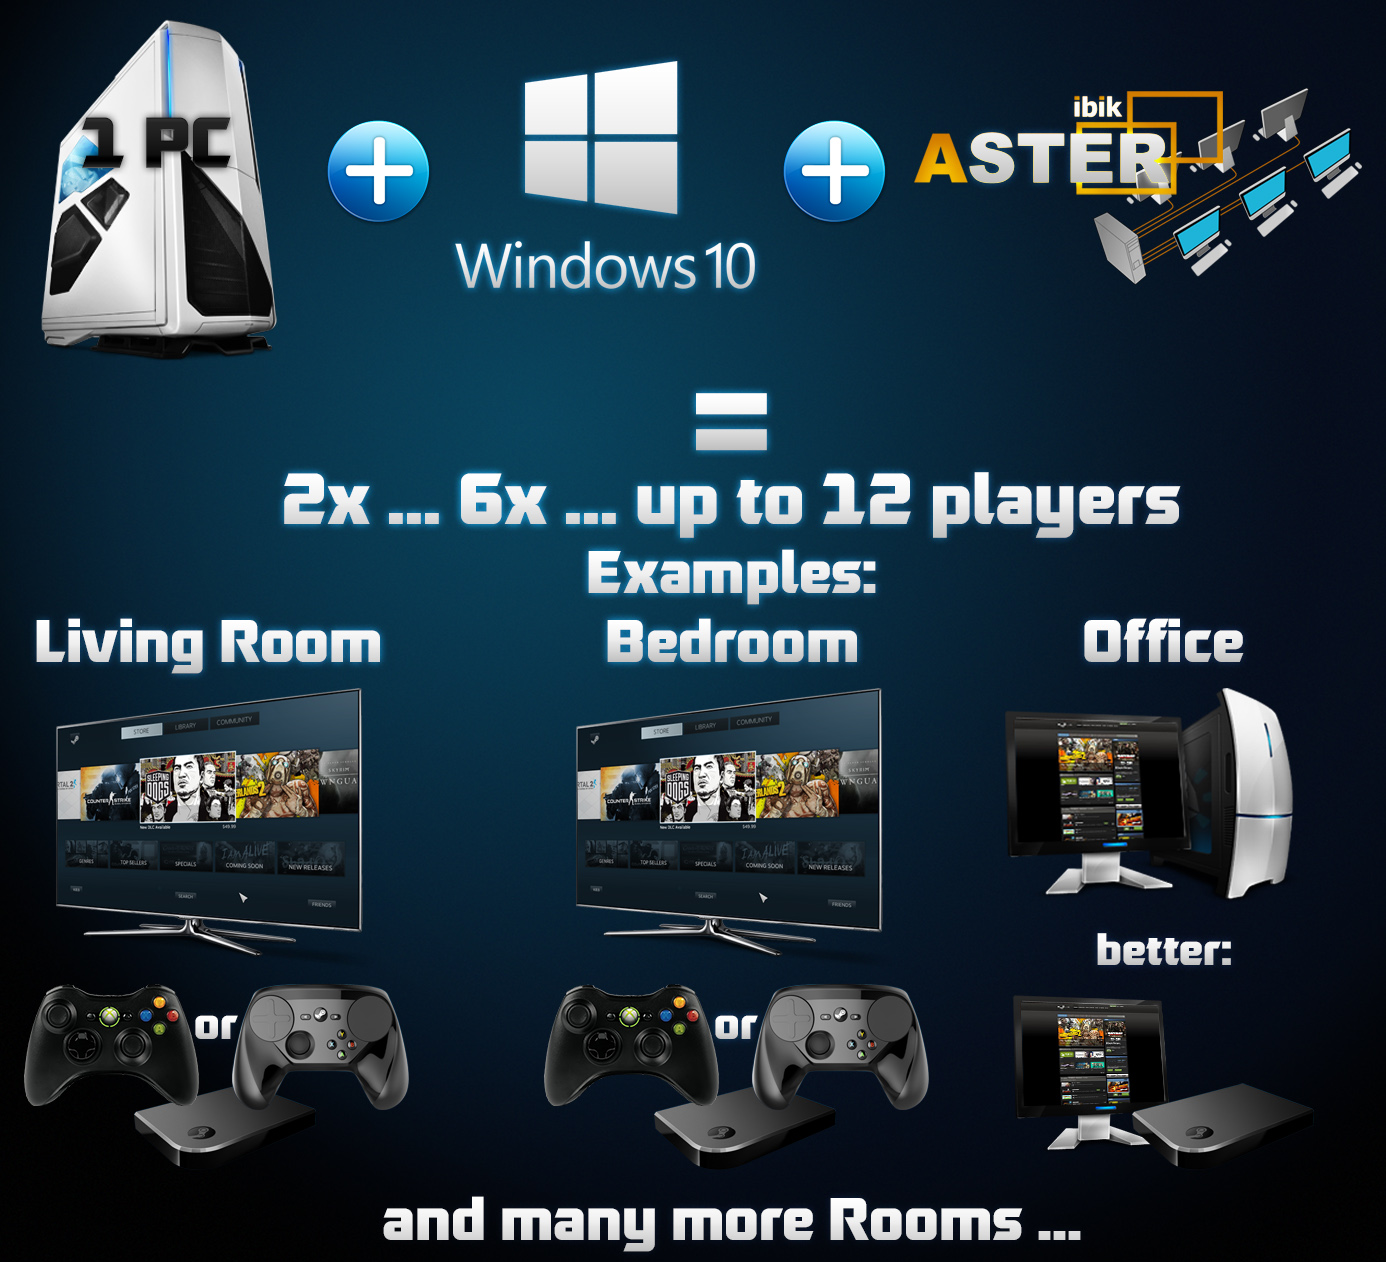 ASTER V7 Pro (up to 6 users,Windows 7/8/10, lifetime)